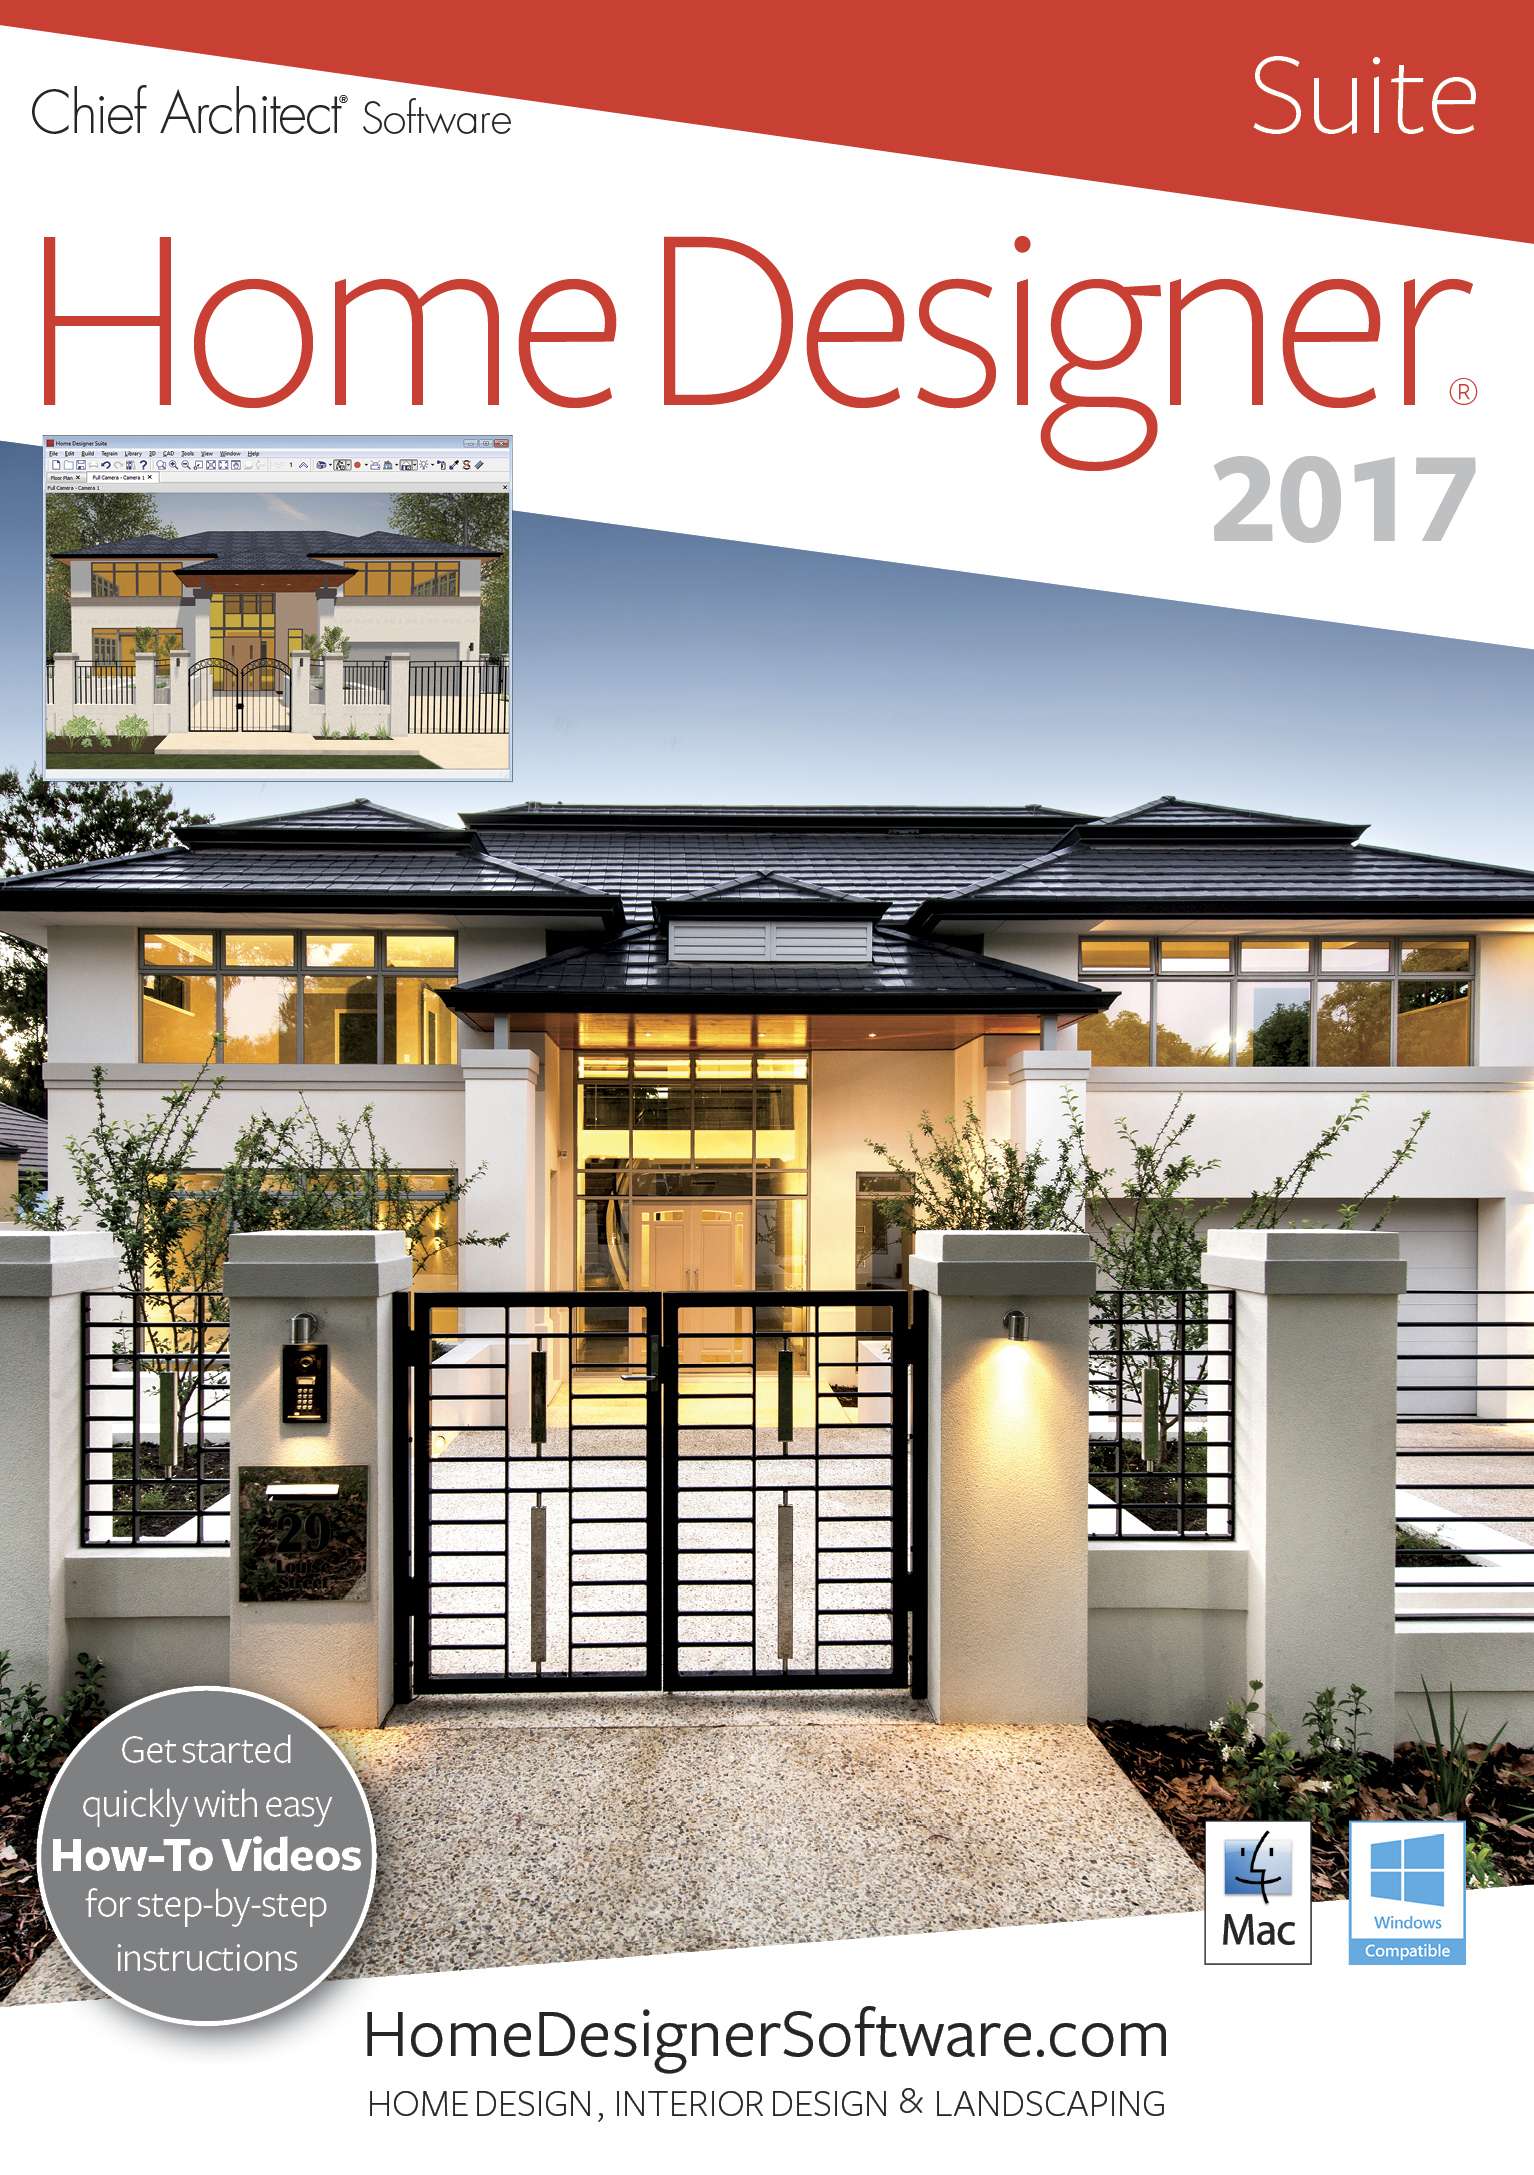 Amazon.com: Home Designer Suite 2017 [Mac]: Software